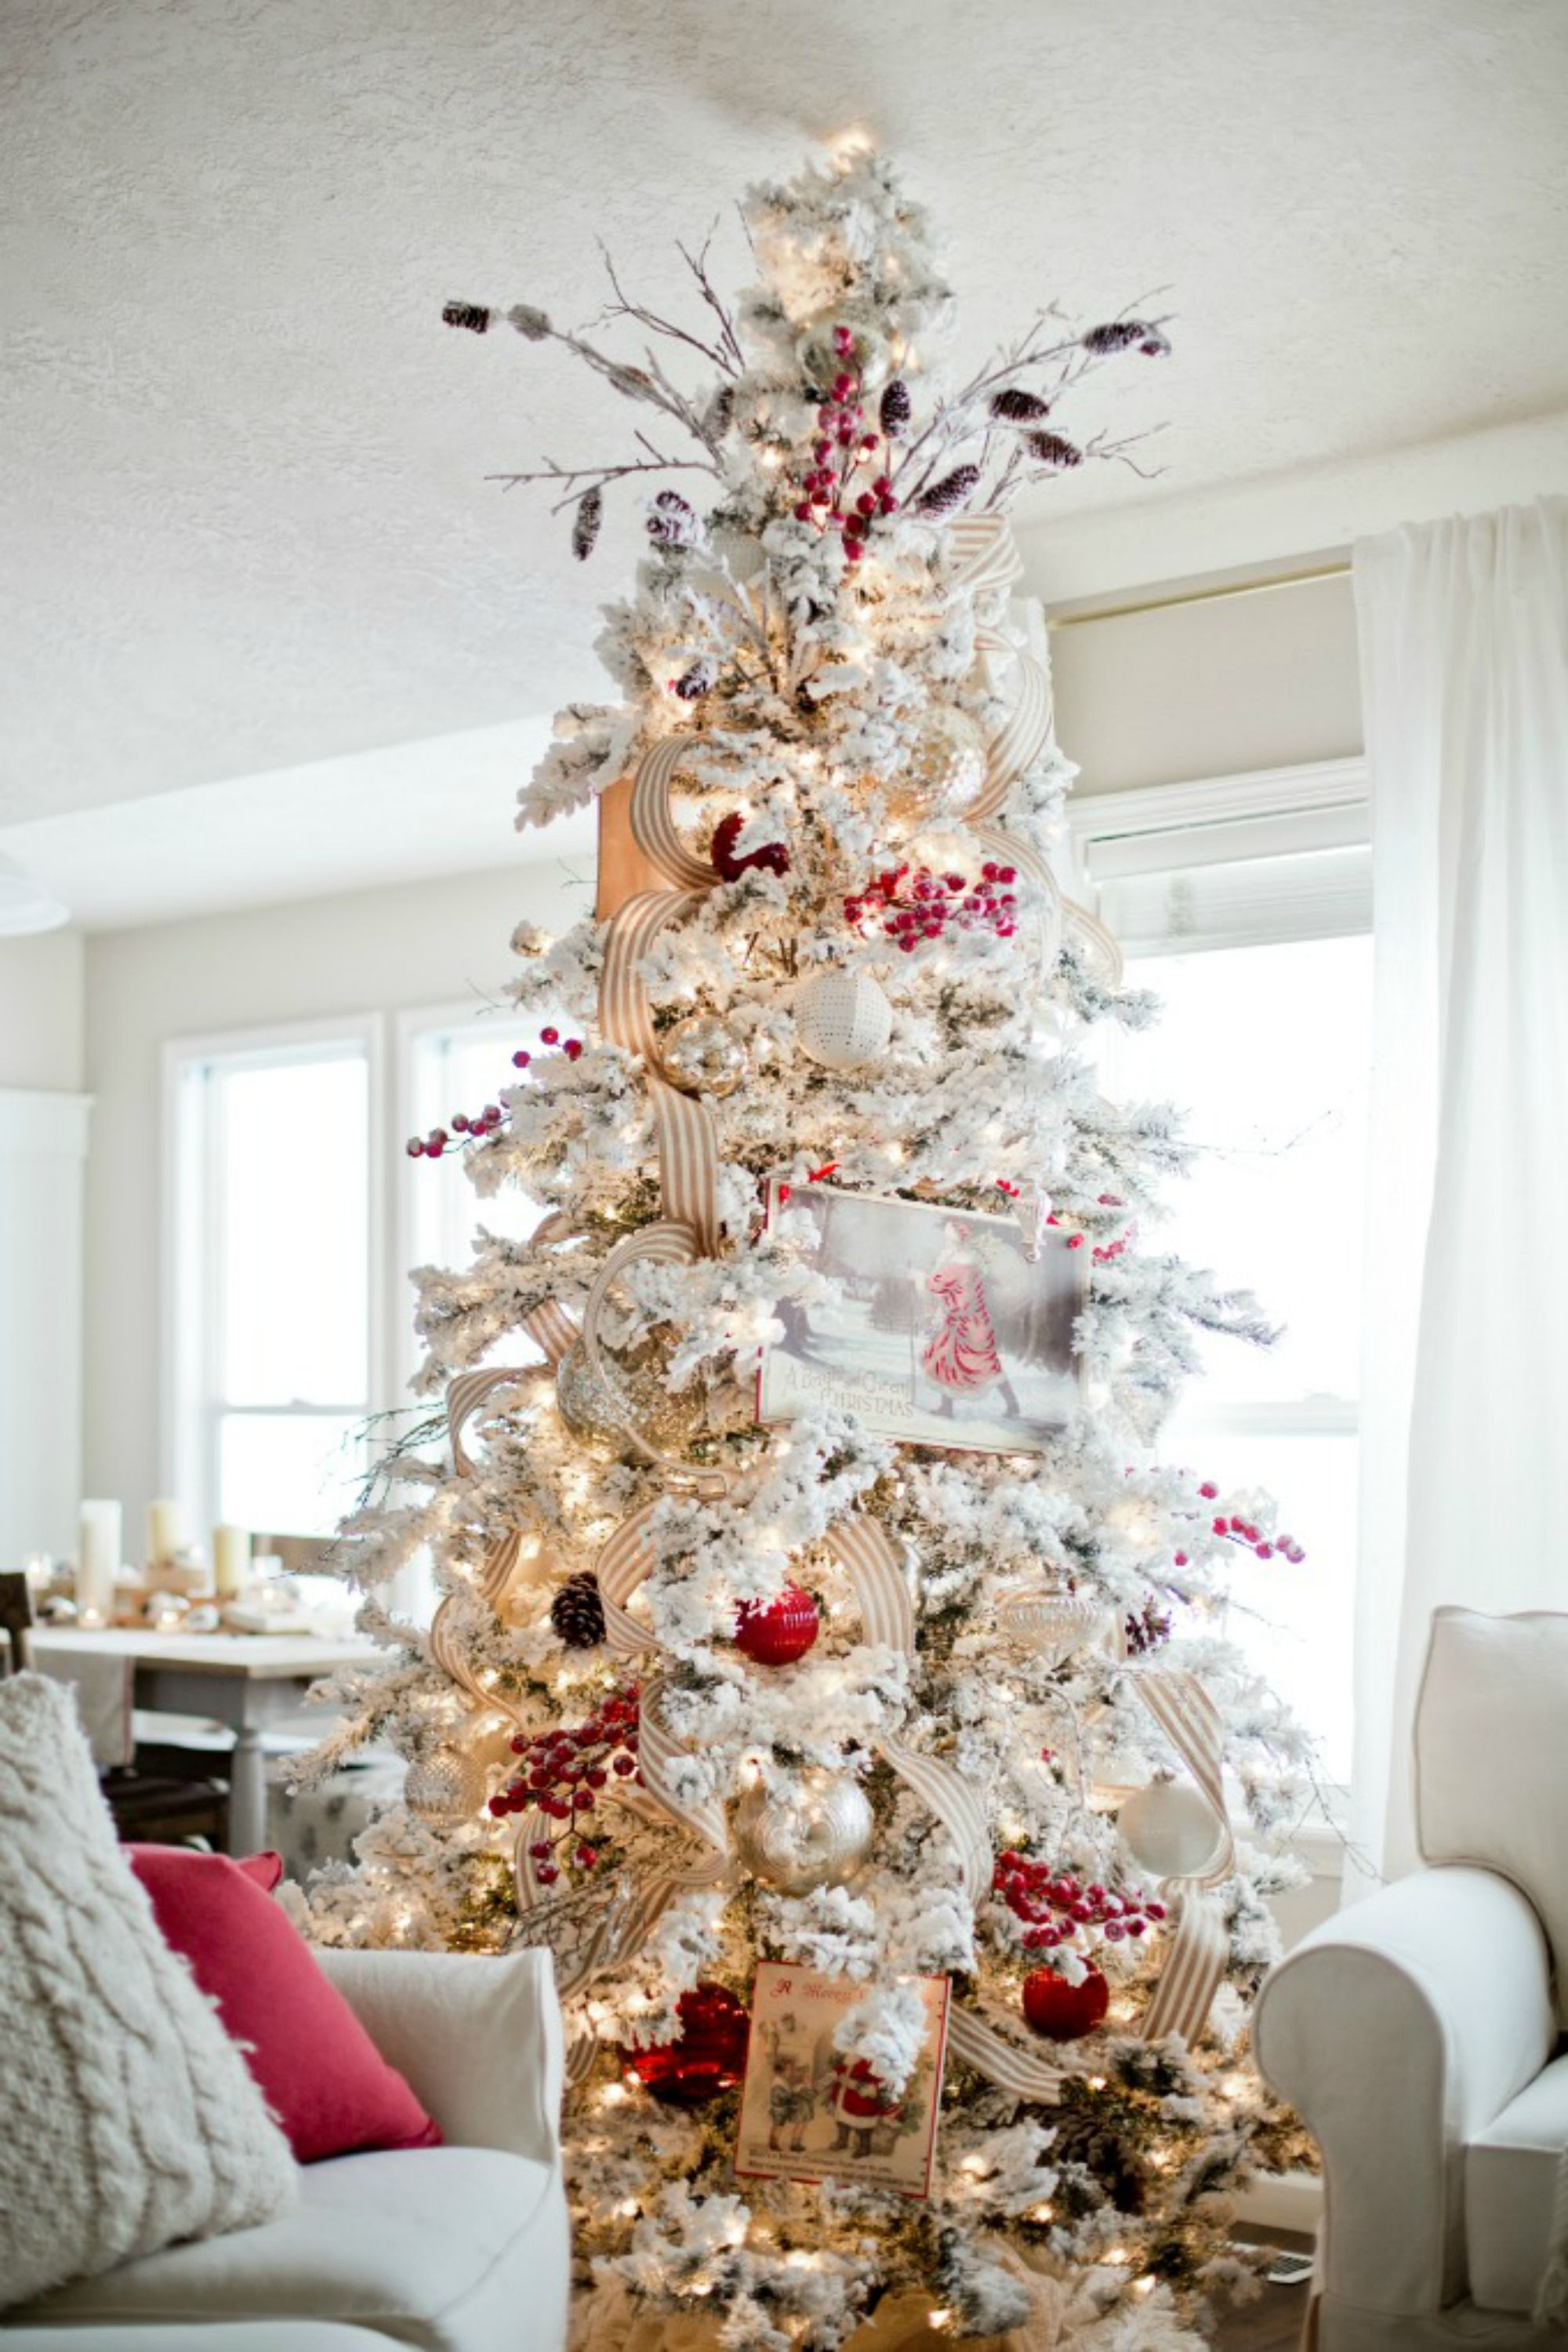 27 Christmas Tree Decorating Ideas That Will Light Up the Holidays ...